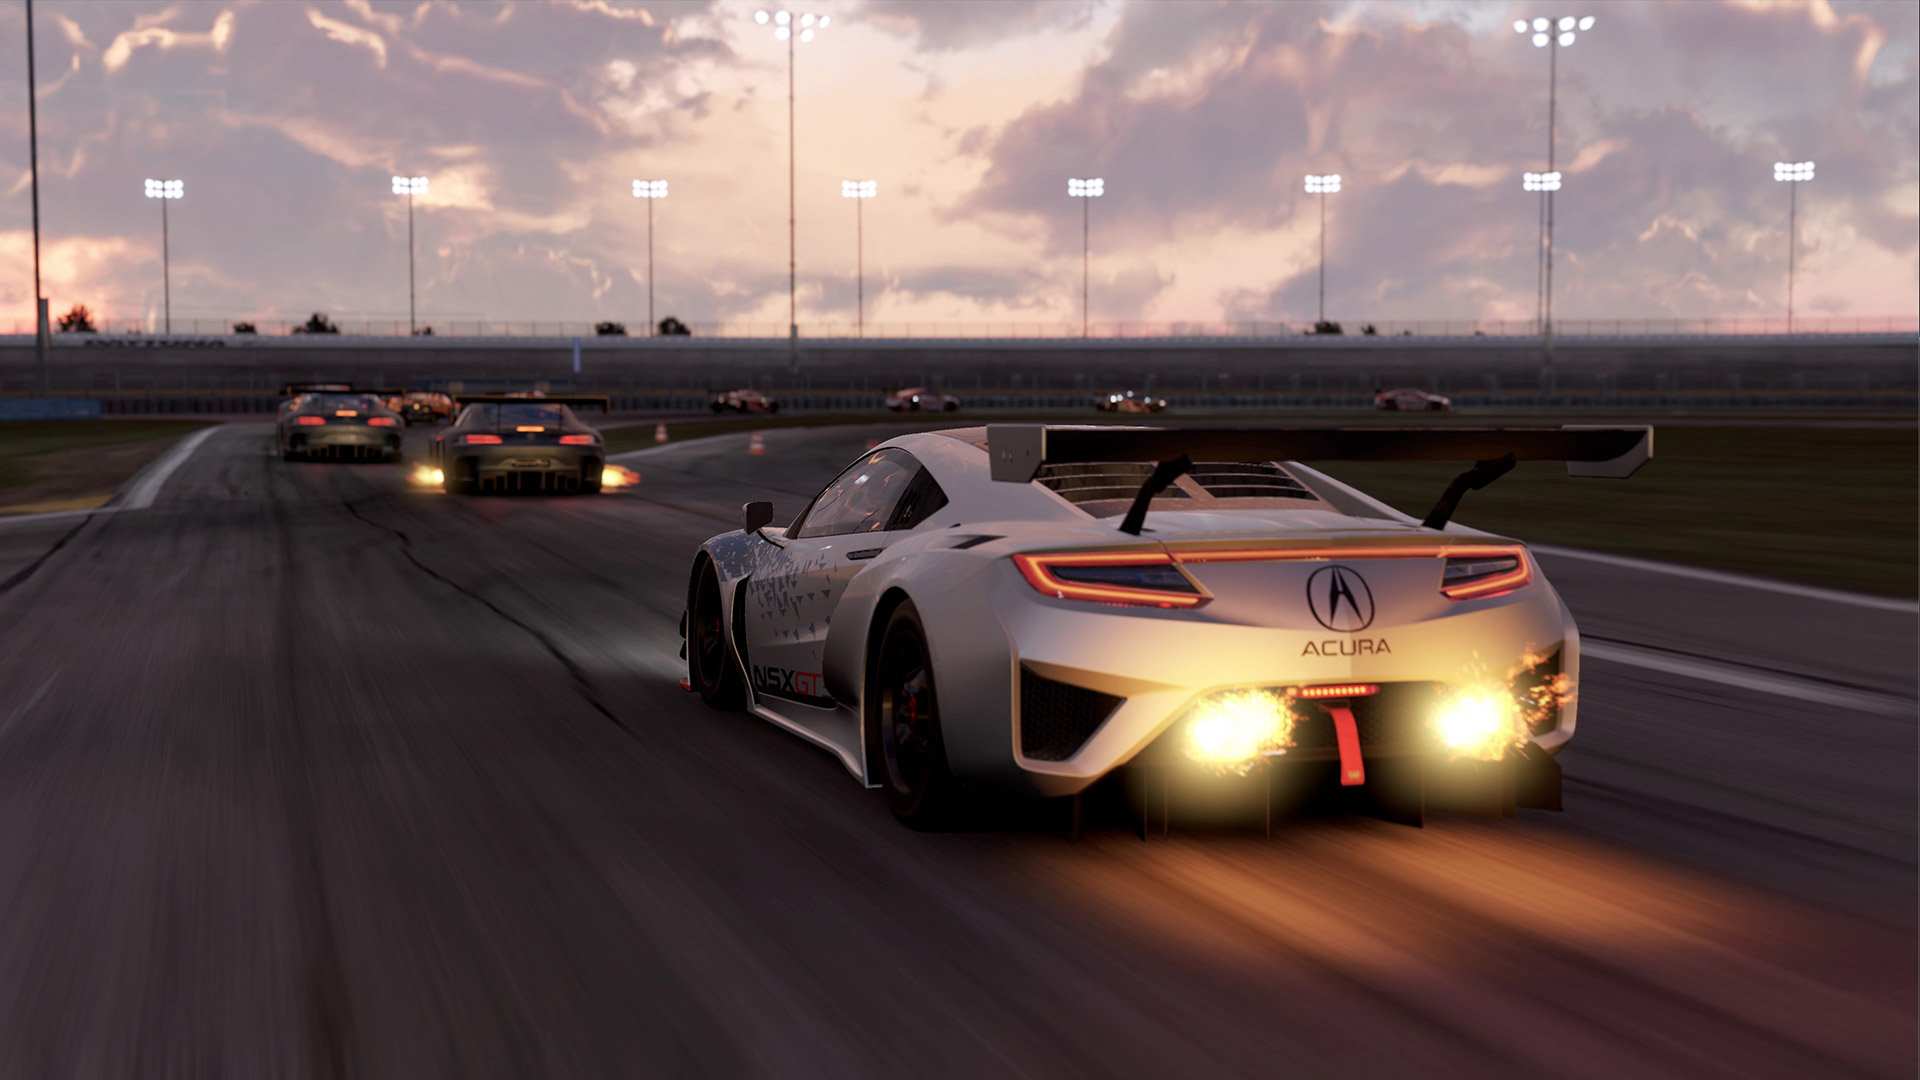 Project Cars 2 Graphics On Xbox One X Will Be Better Than PlayStation 4 Pro